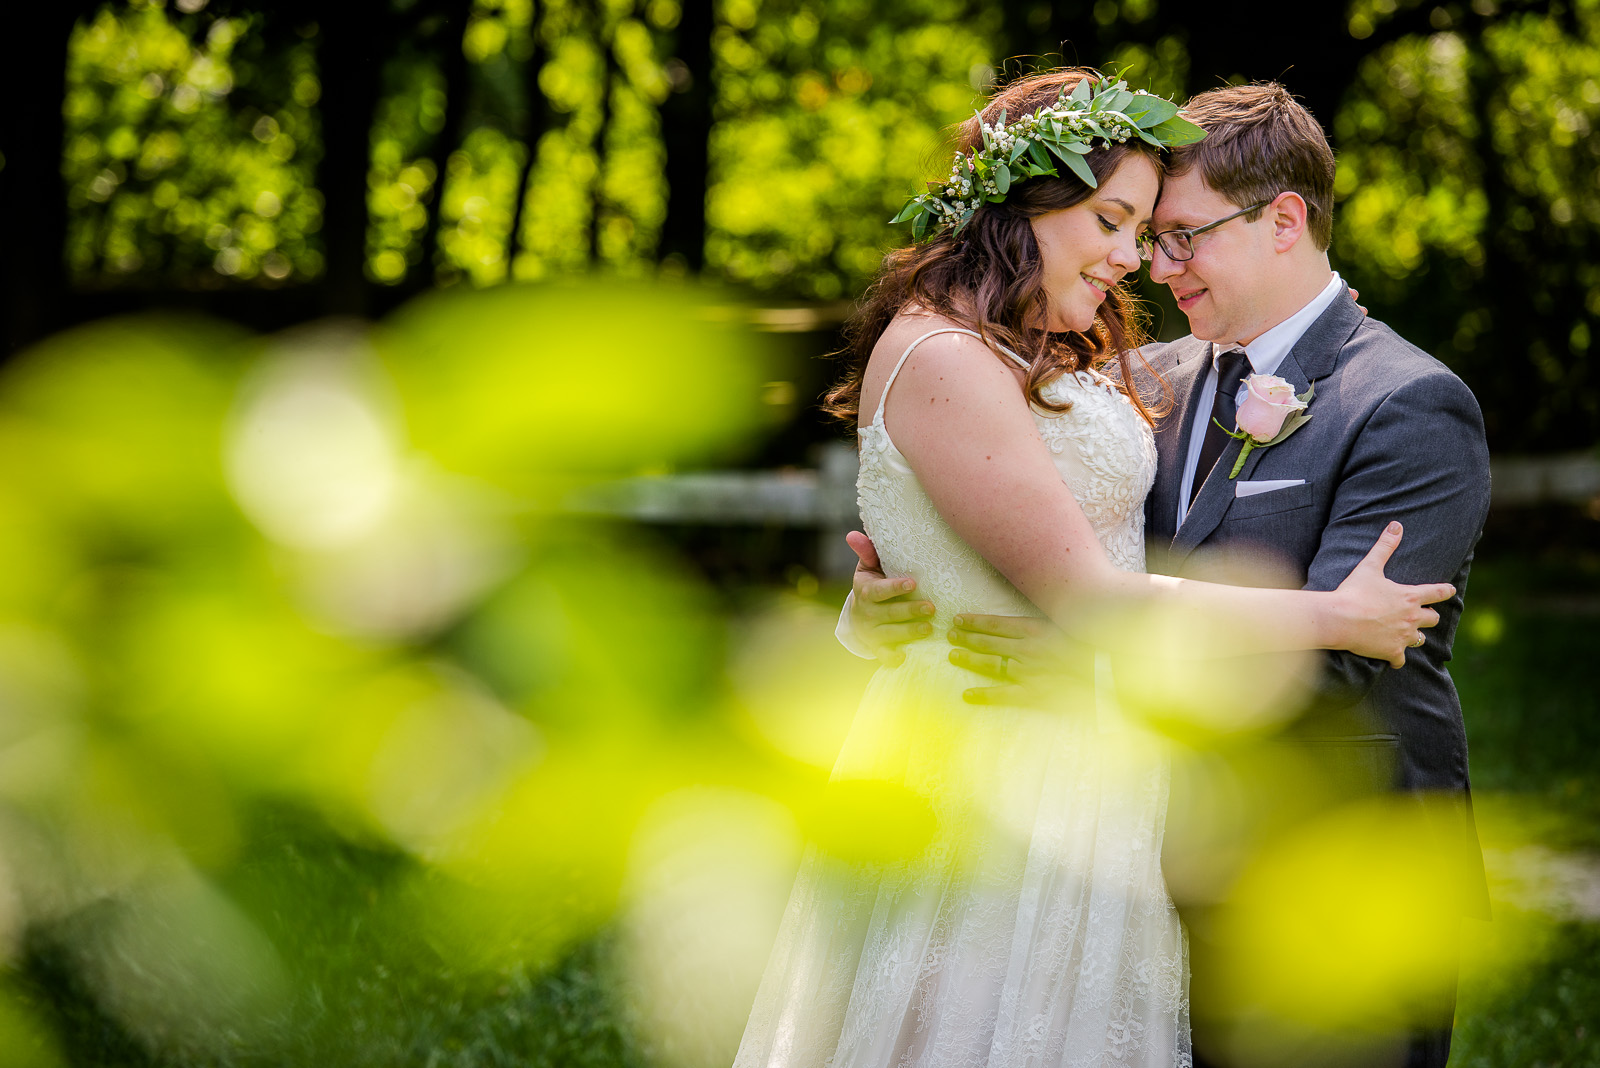 Eric_and_Christy_Photography_Blog_2018_Portraits-3